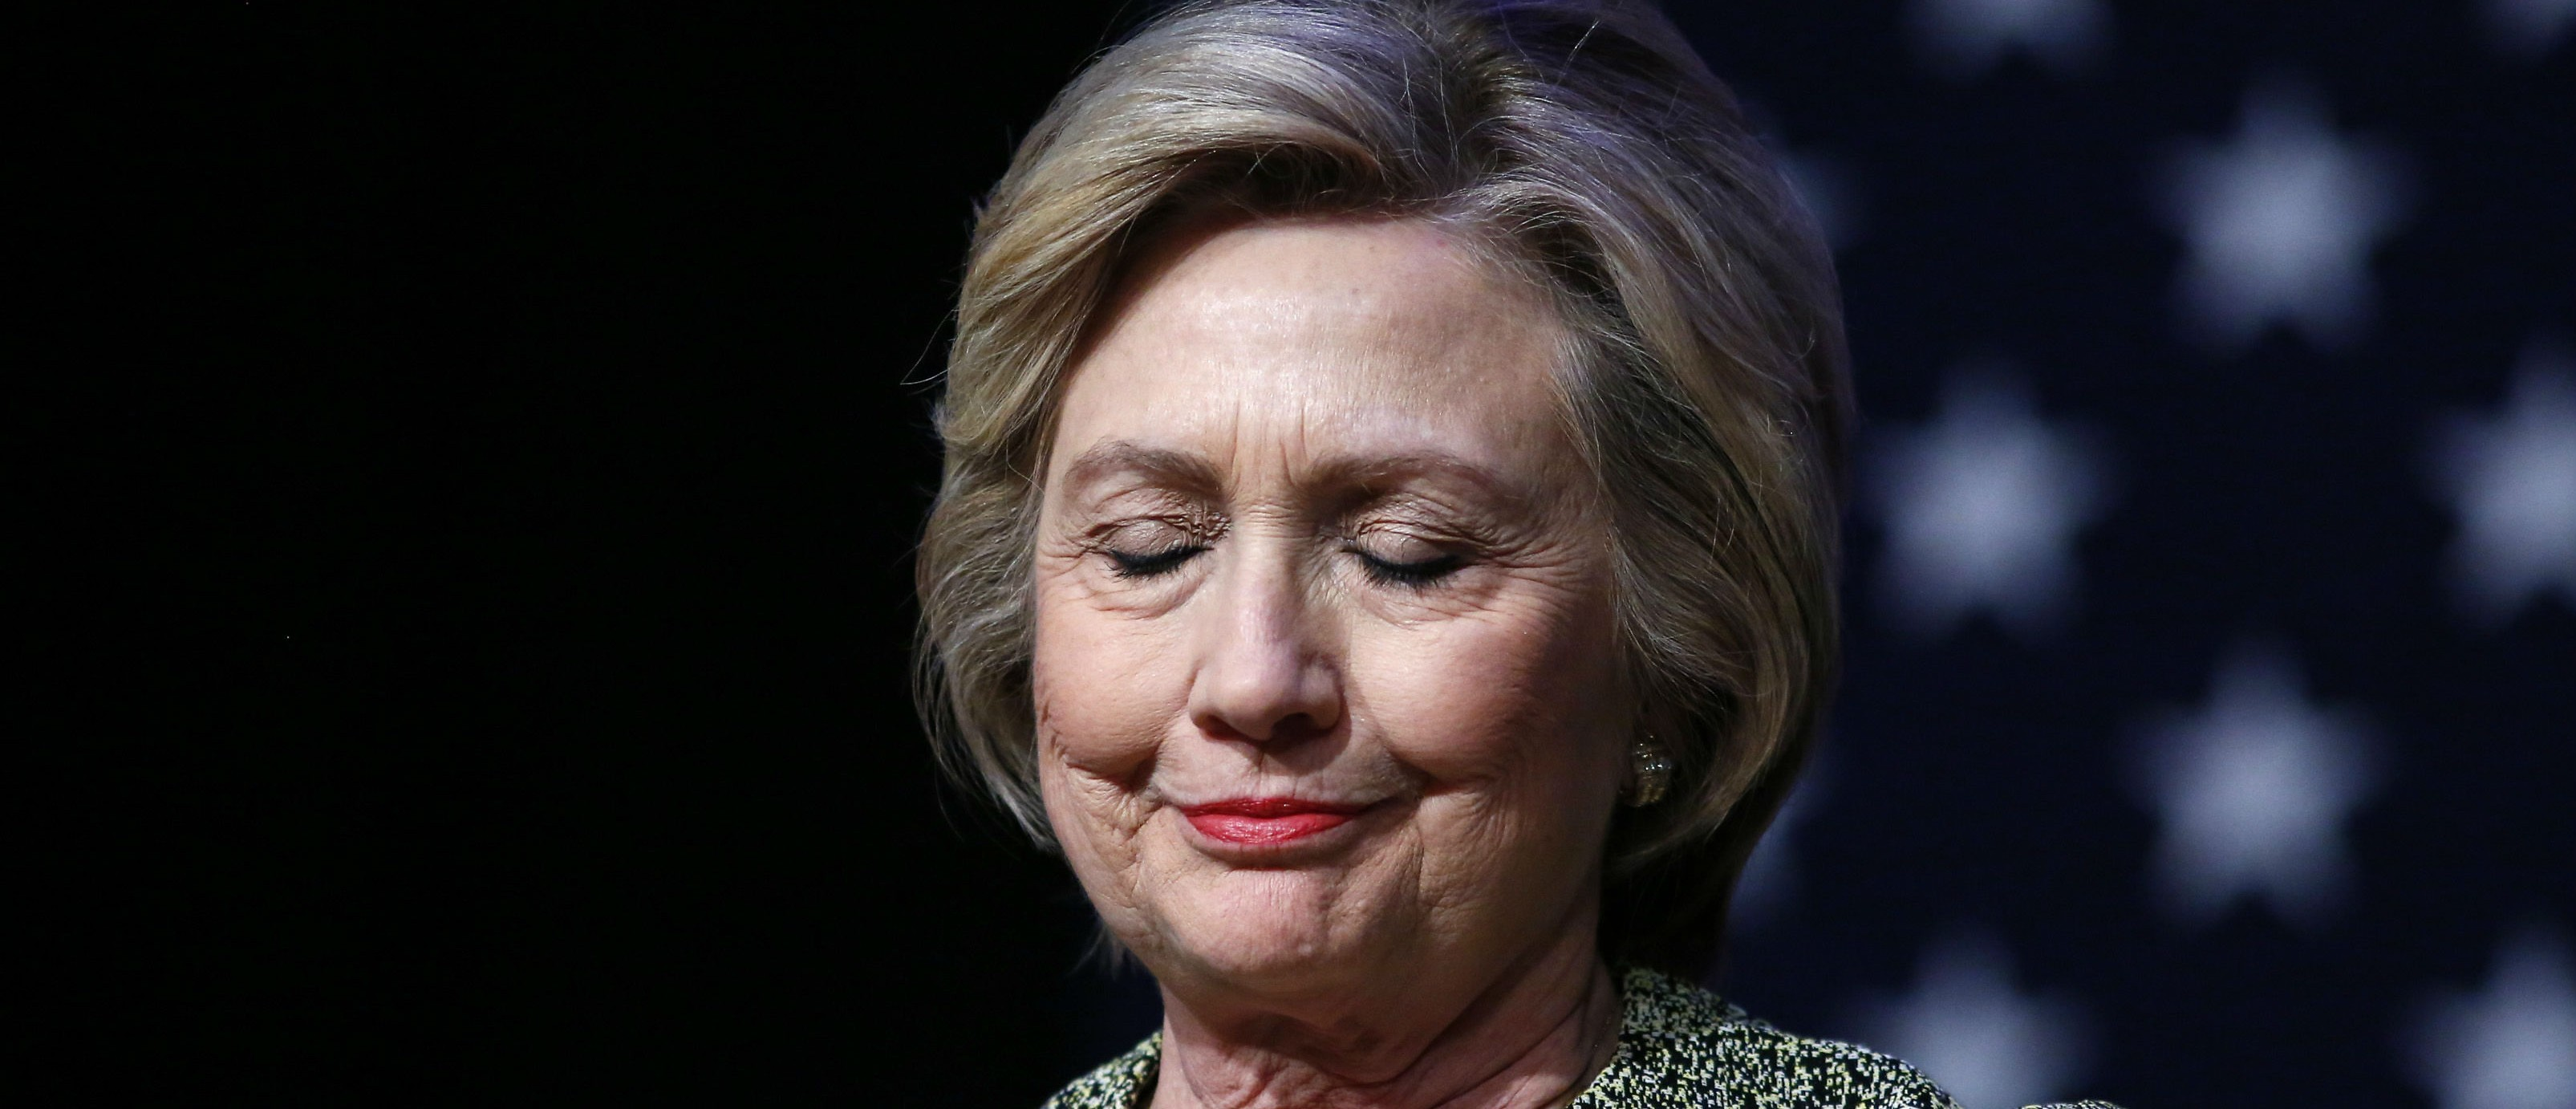 Hillary Clinton is sad she doesn't have time for yoga (Photo: Getty Images)